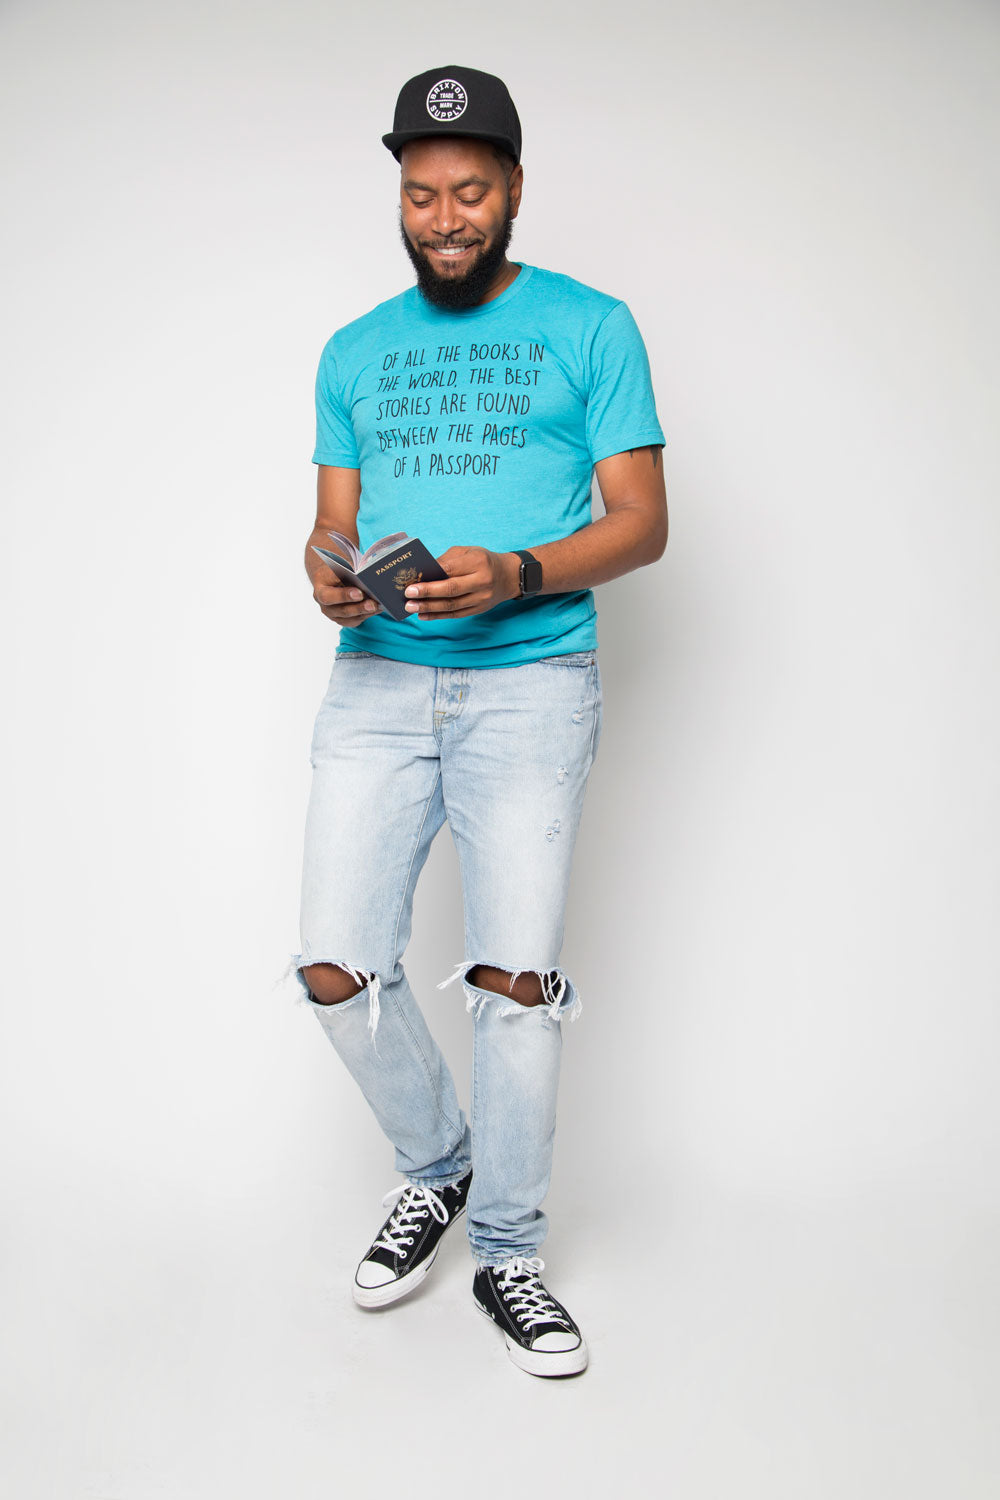 Passport Shirt in Bondi Blue - Trunk Series, LLC